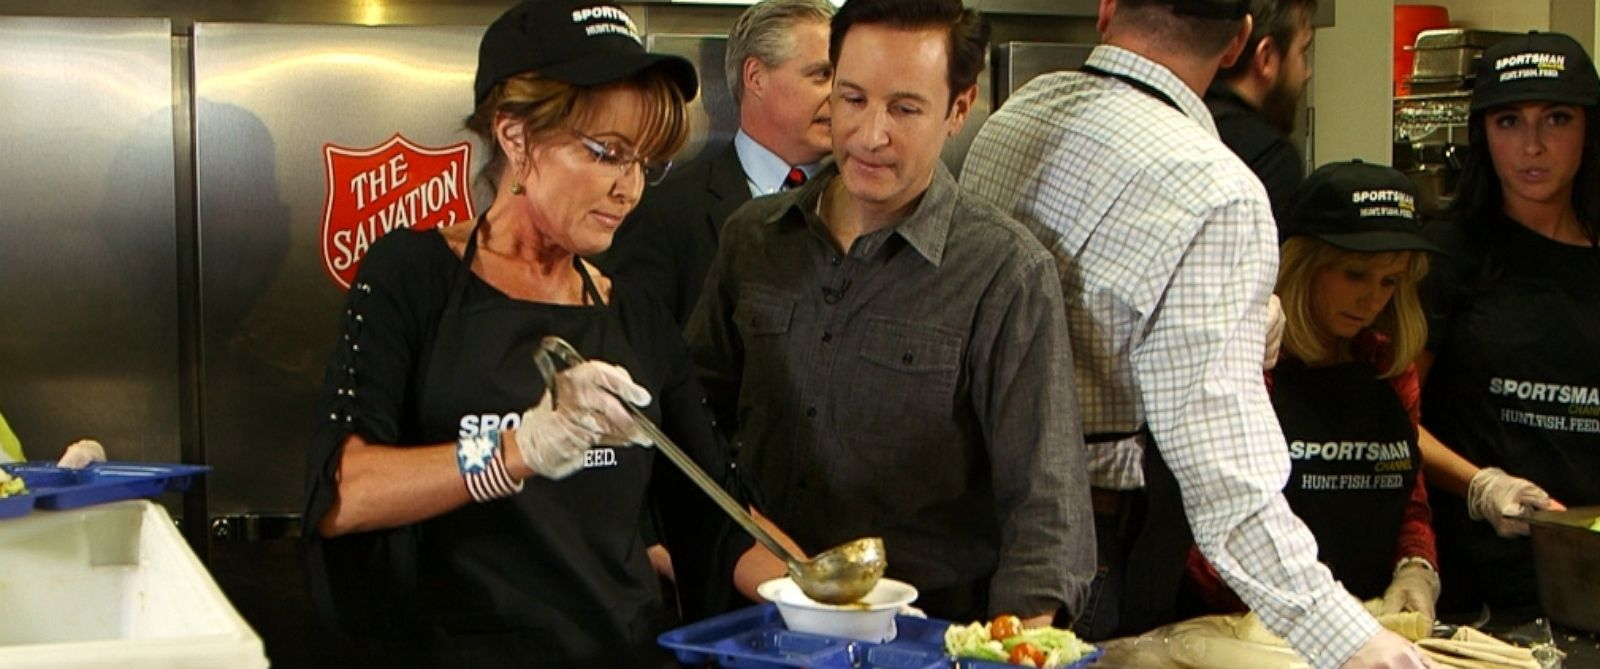 PHOTO: Sarah Palin and Neal Karlinsky are pictured as Palin serves wild boar chili to the homeless in Las Vegas.